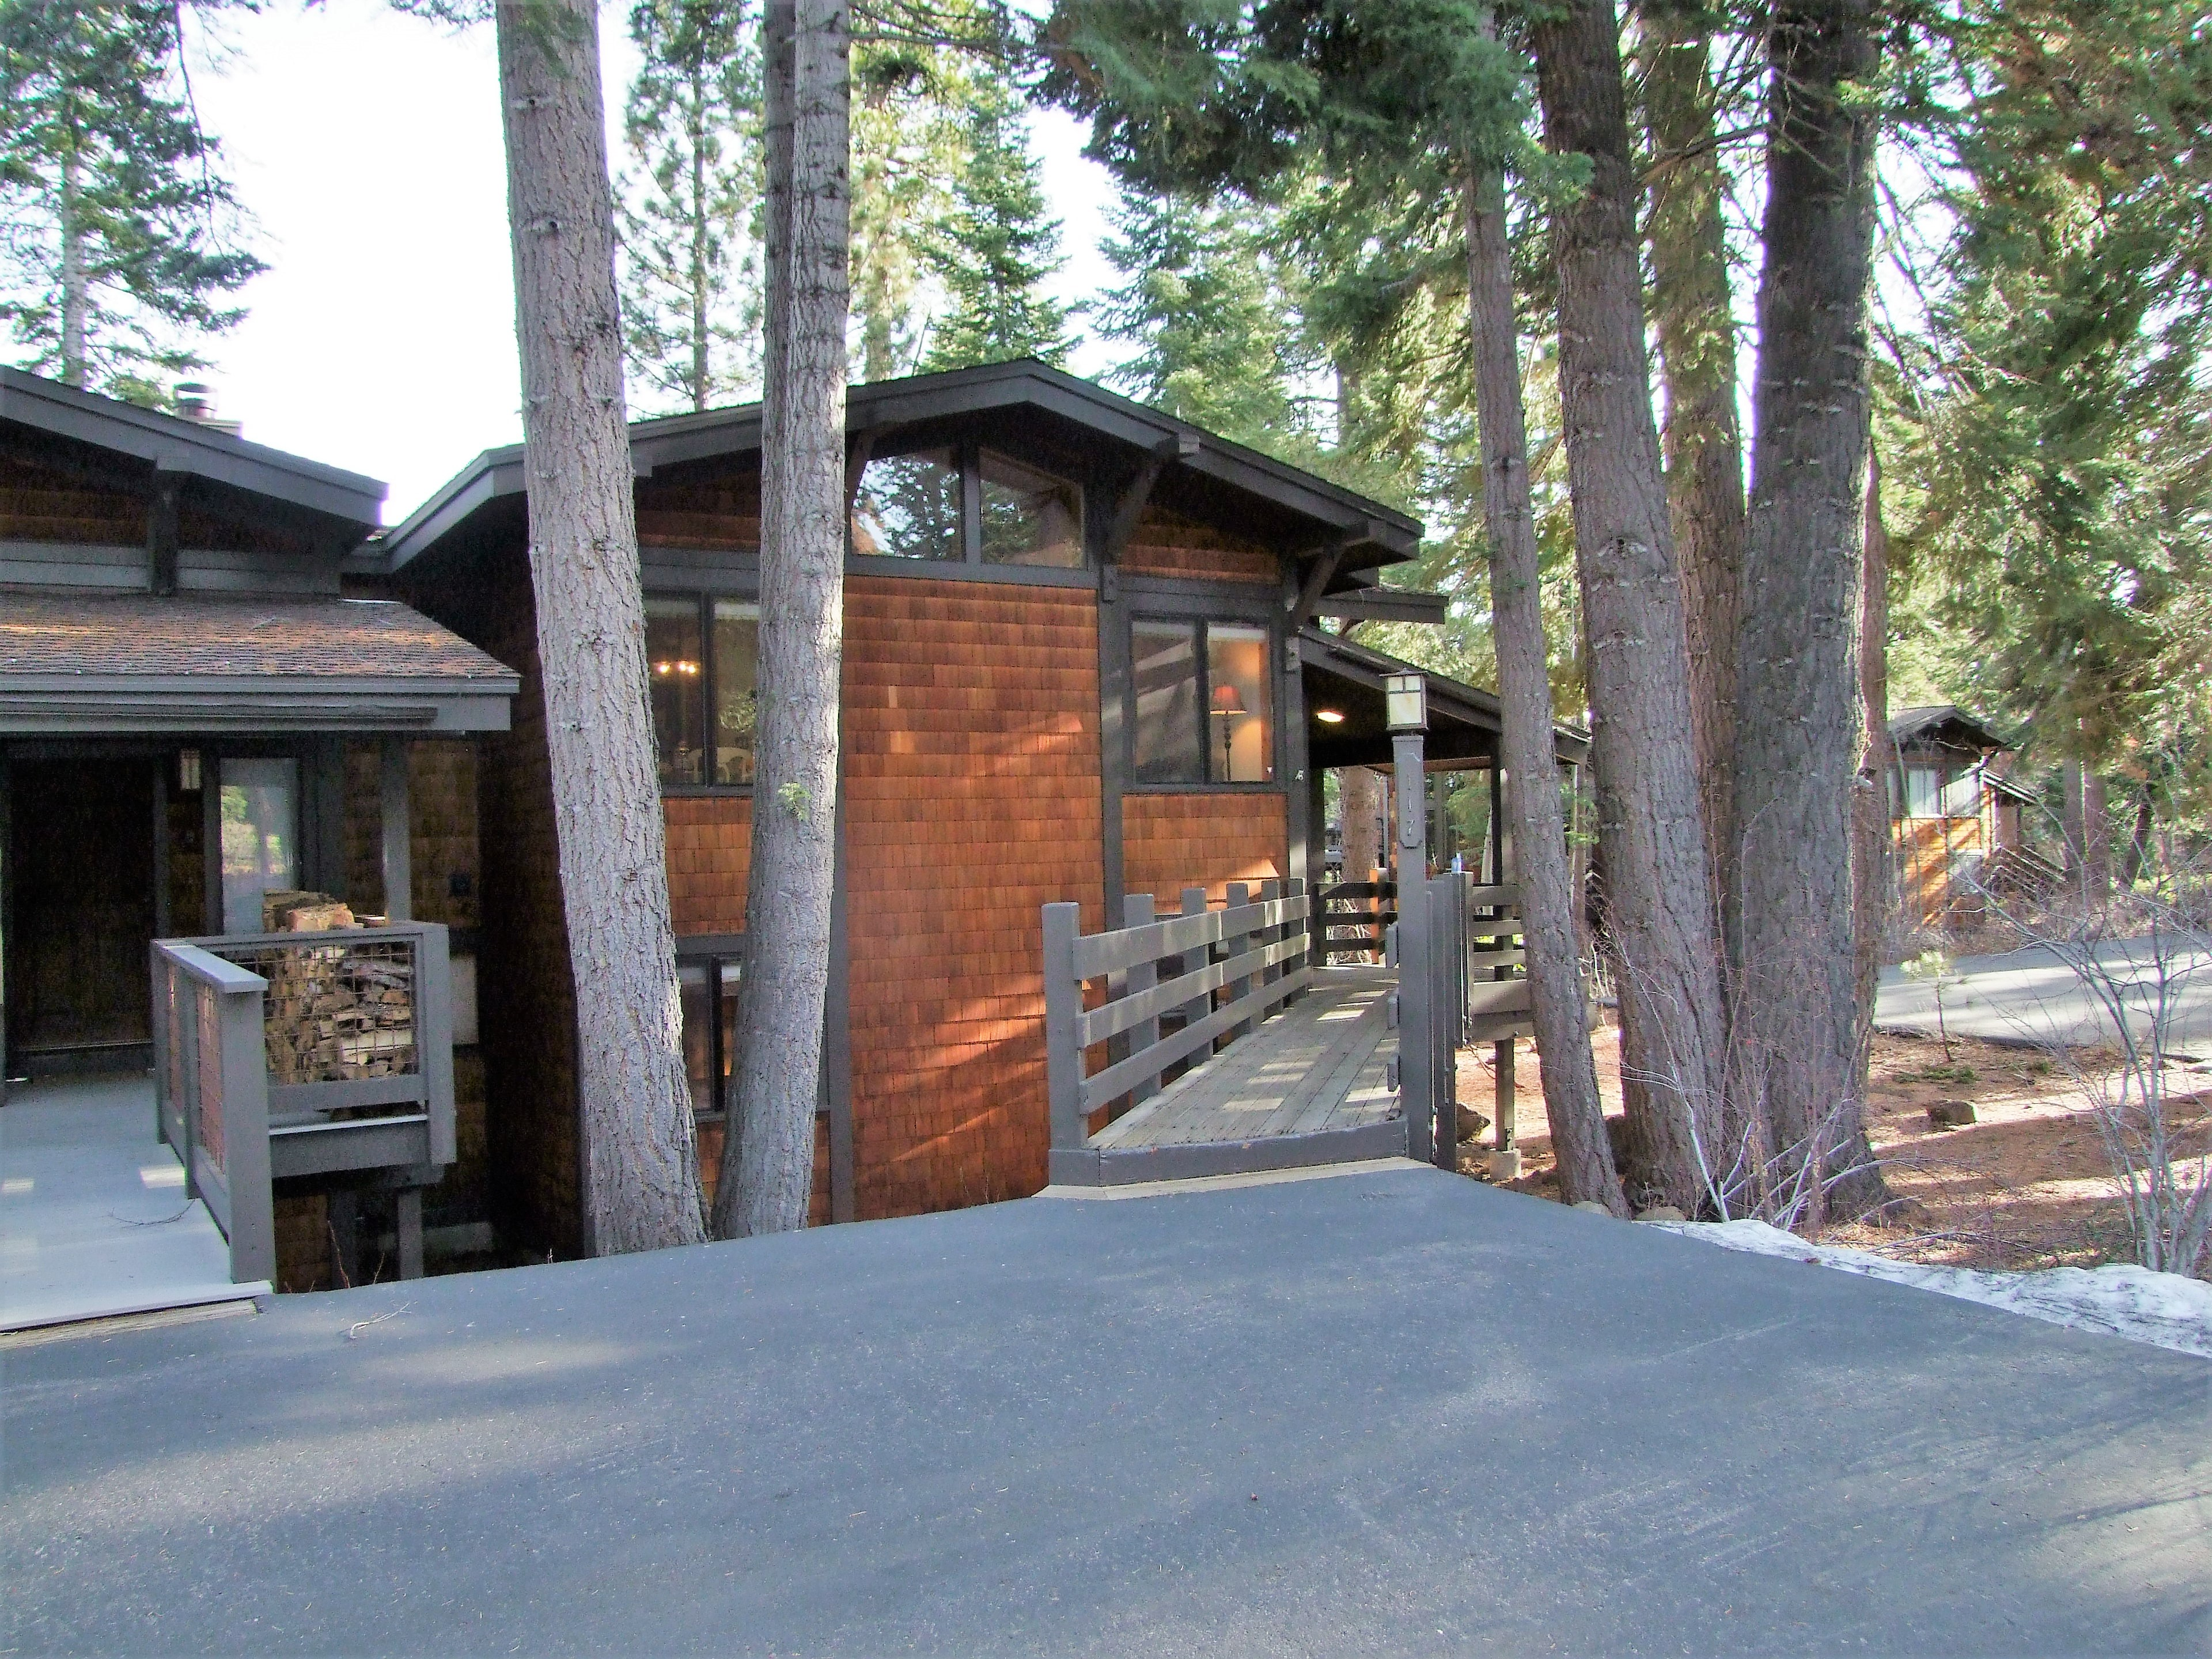 moment final best s momentist california donner cabins tahoe californias lake secret in kept